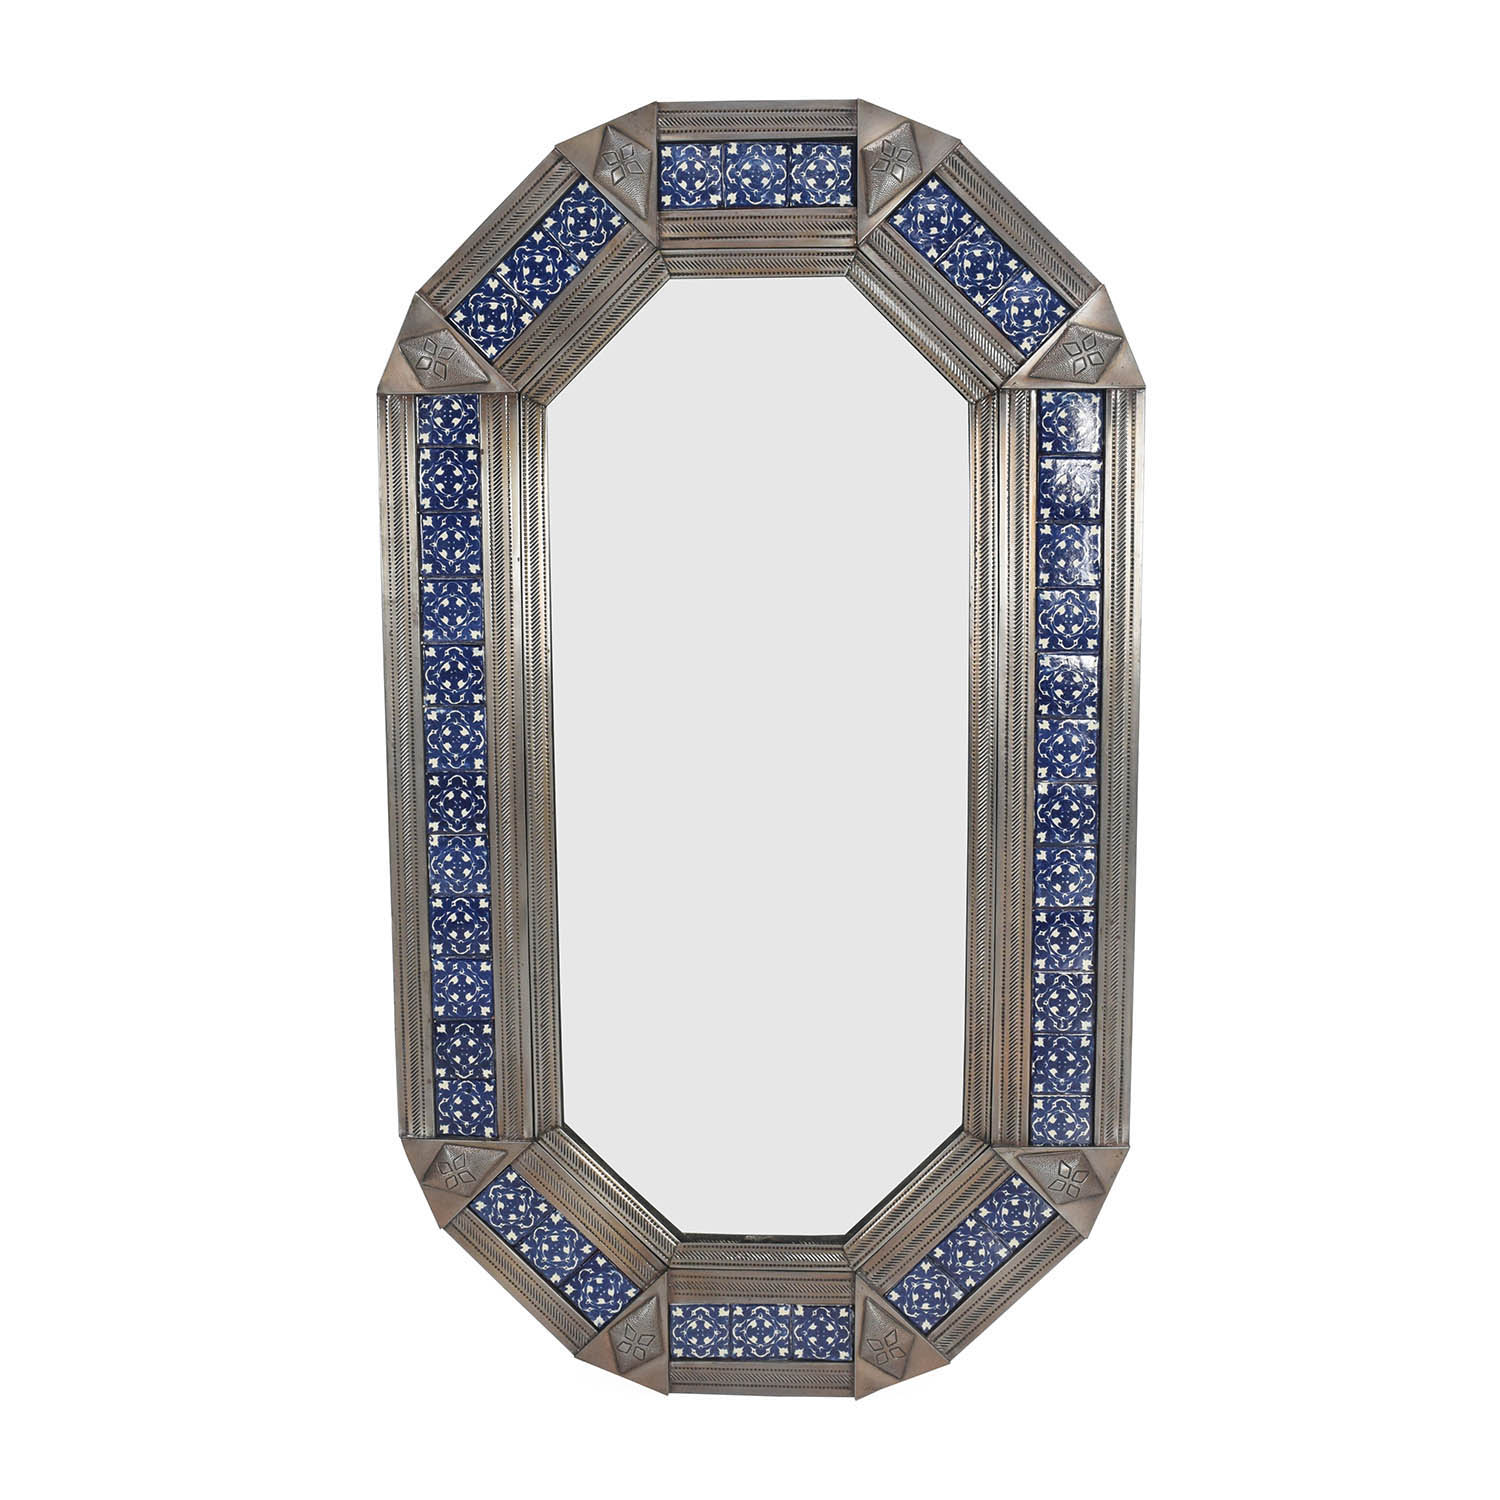 80 off square curved wooden frame mirror decor for Metal frame mirror